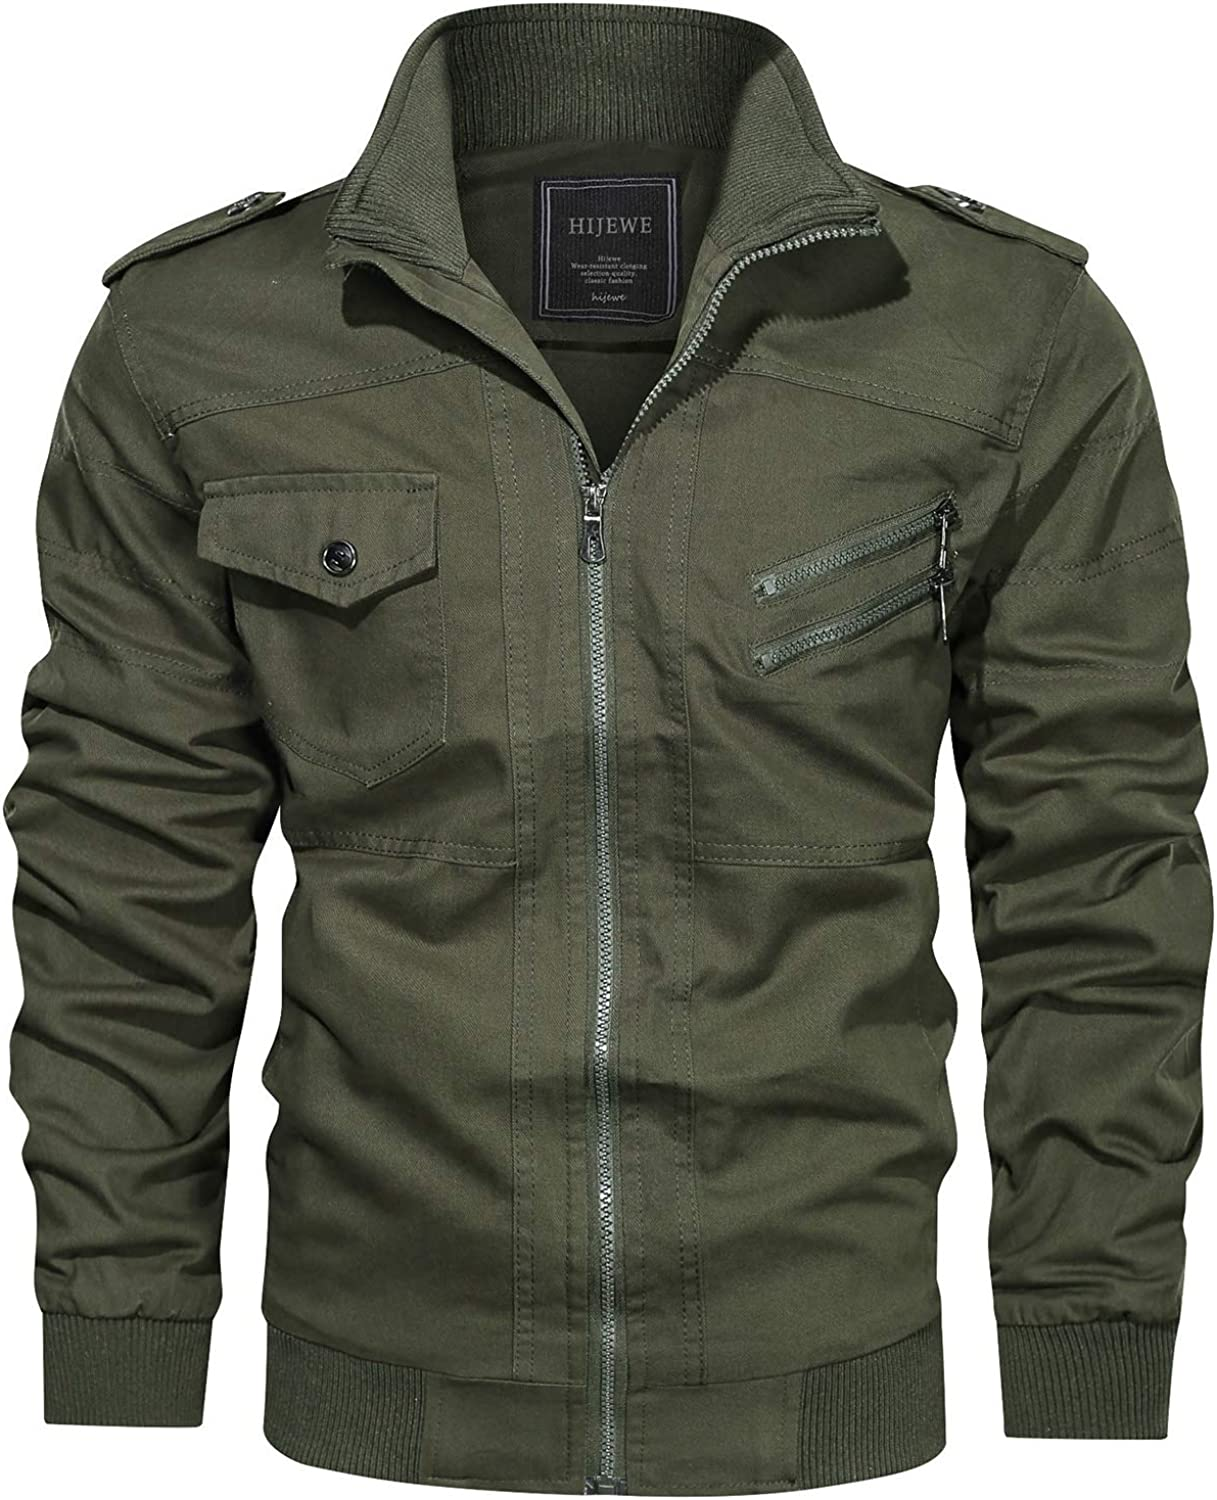 HIJEWE Men's Military Jacket Outdoor Free Shipping New Lightweight Cotton Bargain sale Casual B